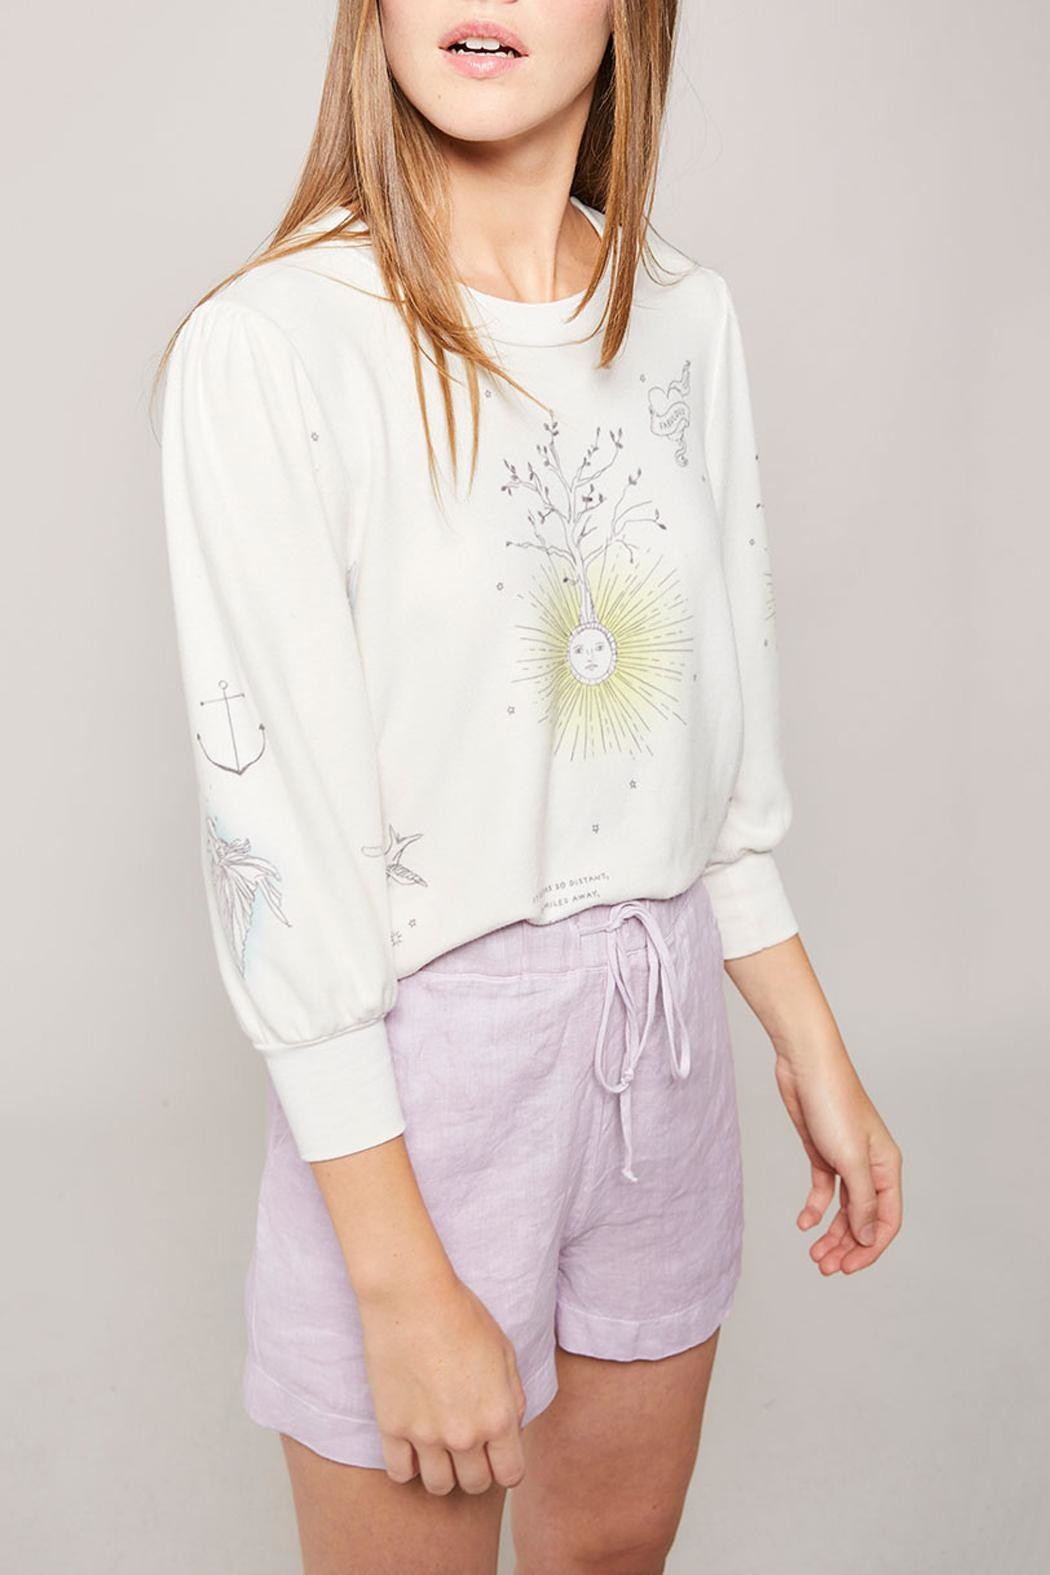 All Things Fabulous Catalina Spring Top - Front Full Image